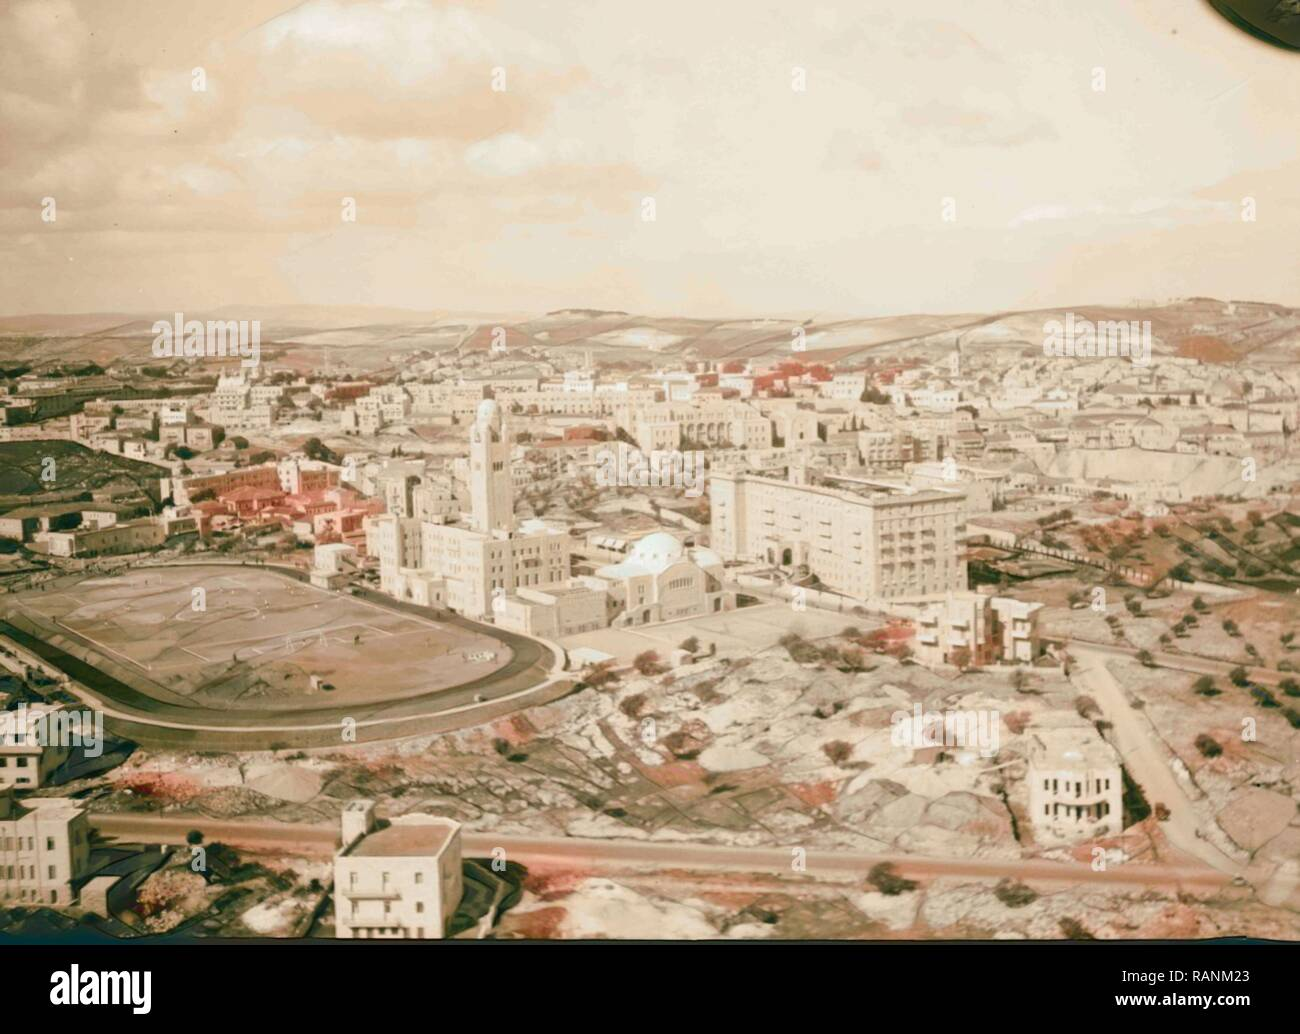 Air views of Palestine. Newer Jerusalem. Y.M.C.A. and King David Hotel from S.W. 1931, Jerusalem. Reimagined - Stock Image